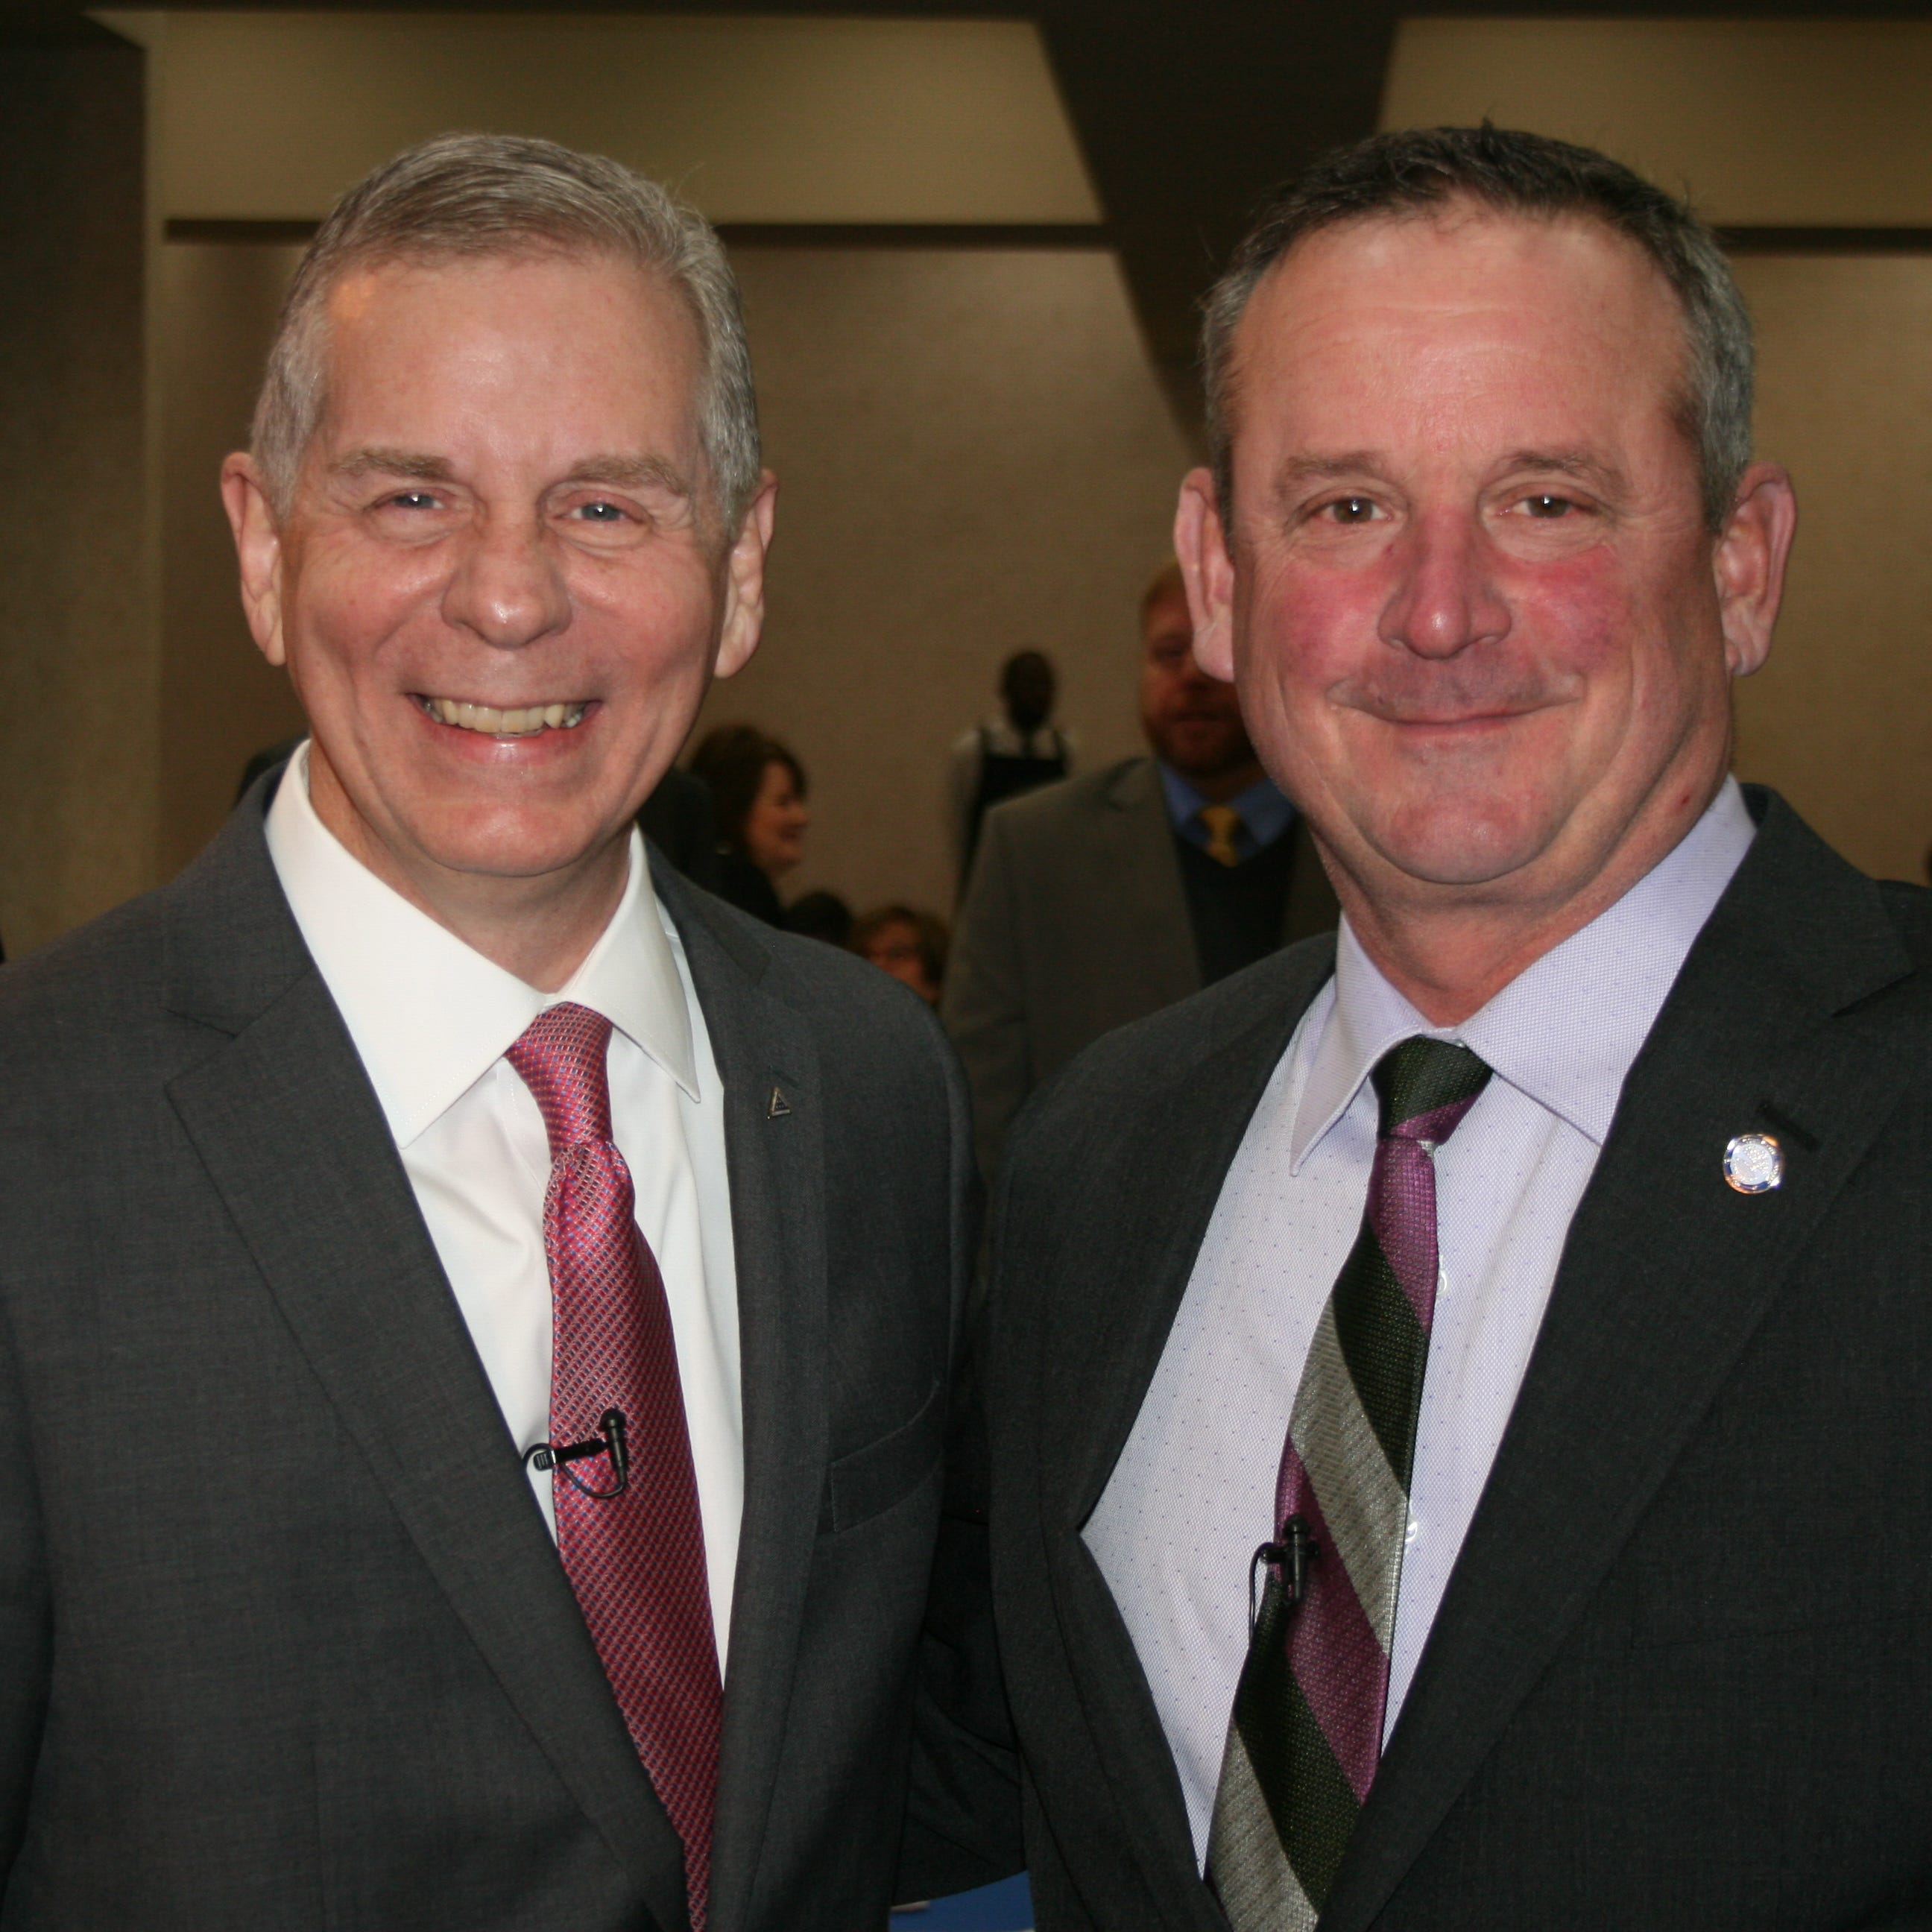 Mayors promise new era of cooperation for Clarksville, Montgomery County